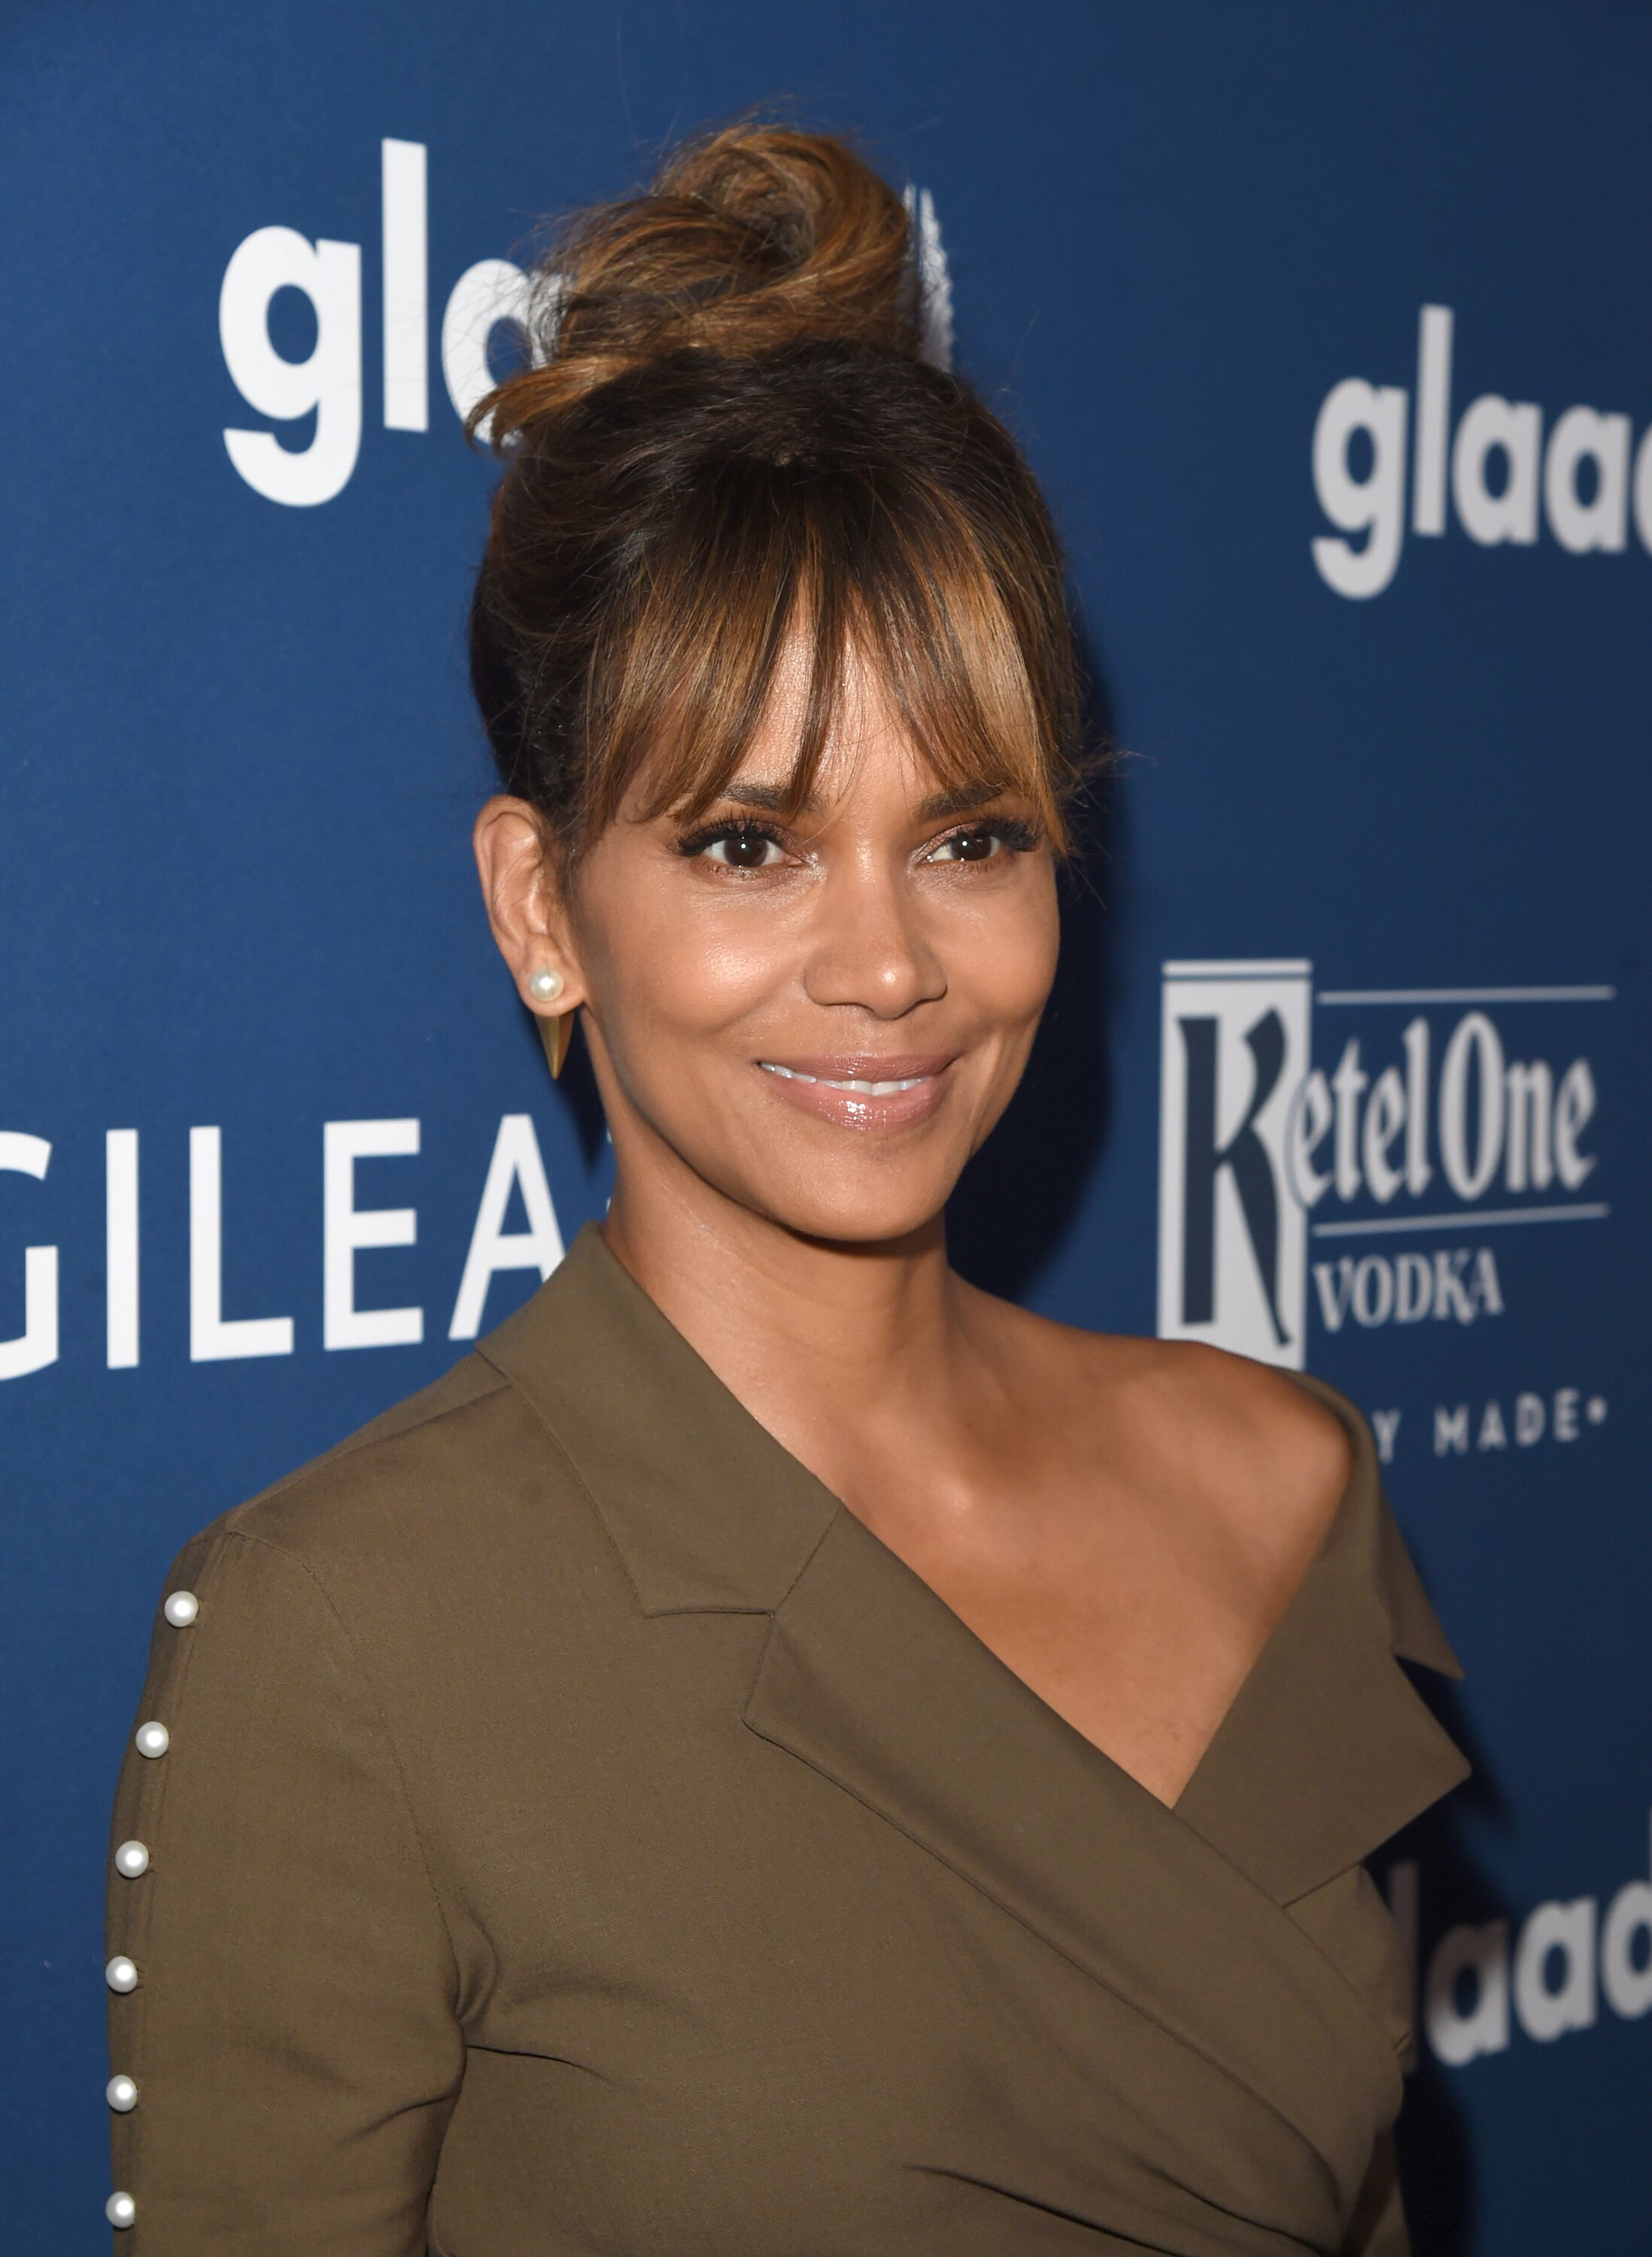 Halle Berry attends the 29th Annual GLAAD Media Awards at The Beverly Hilton Hotel on April 12, 2018. | Source: Getty Images